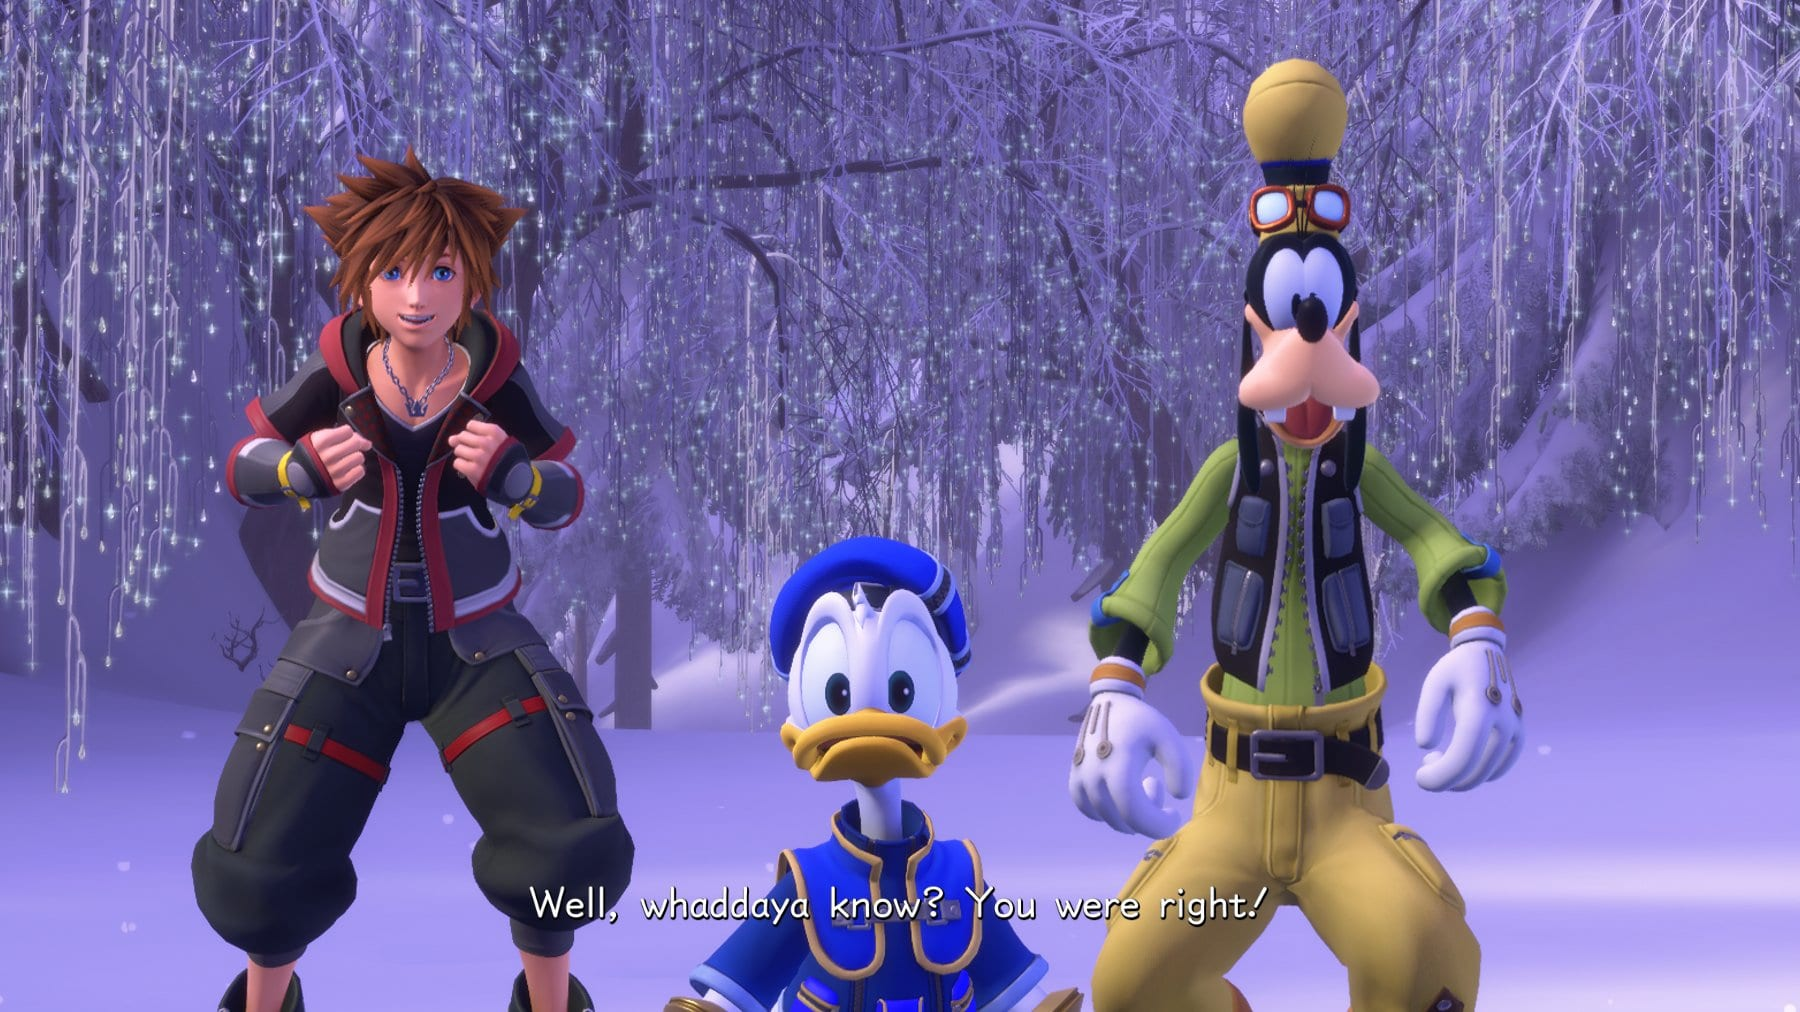 Kingdom_hearts_III main heroes